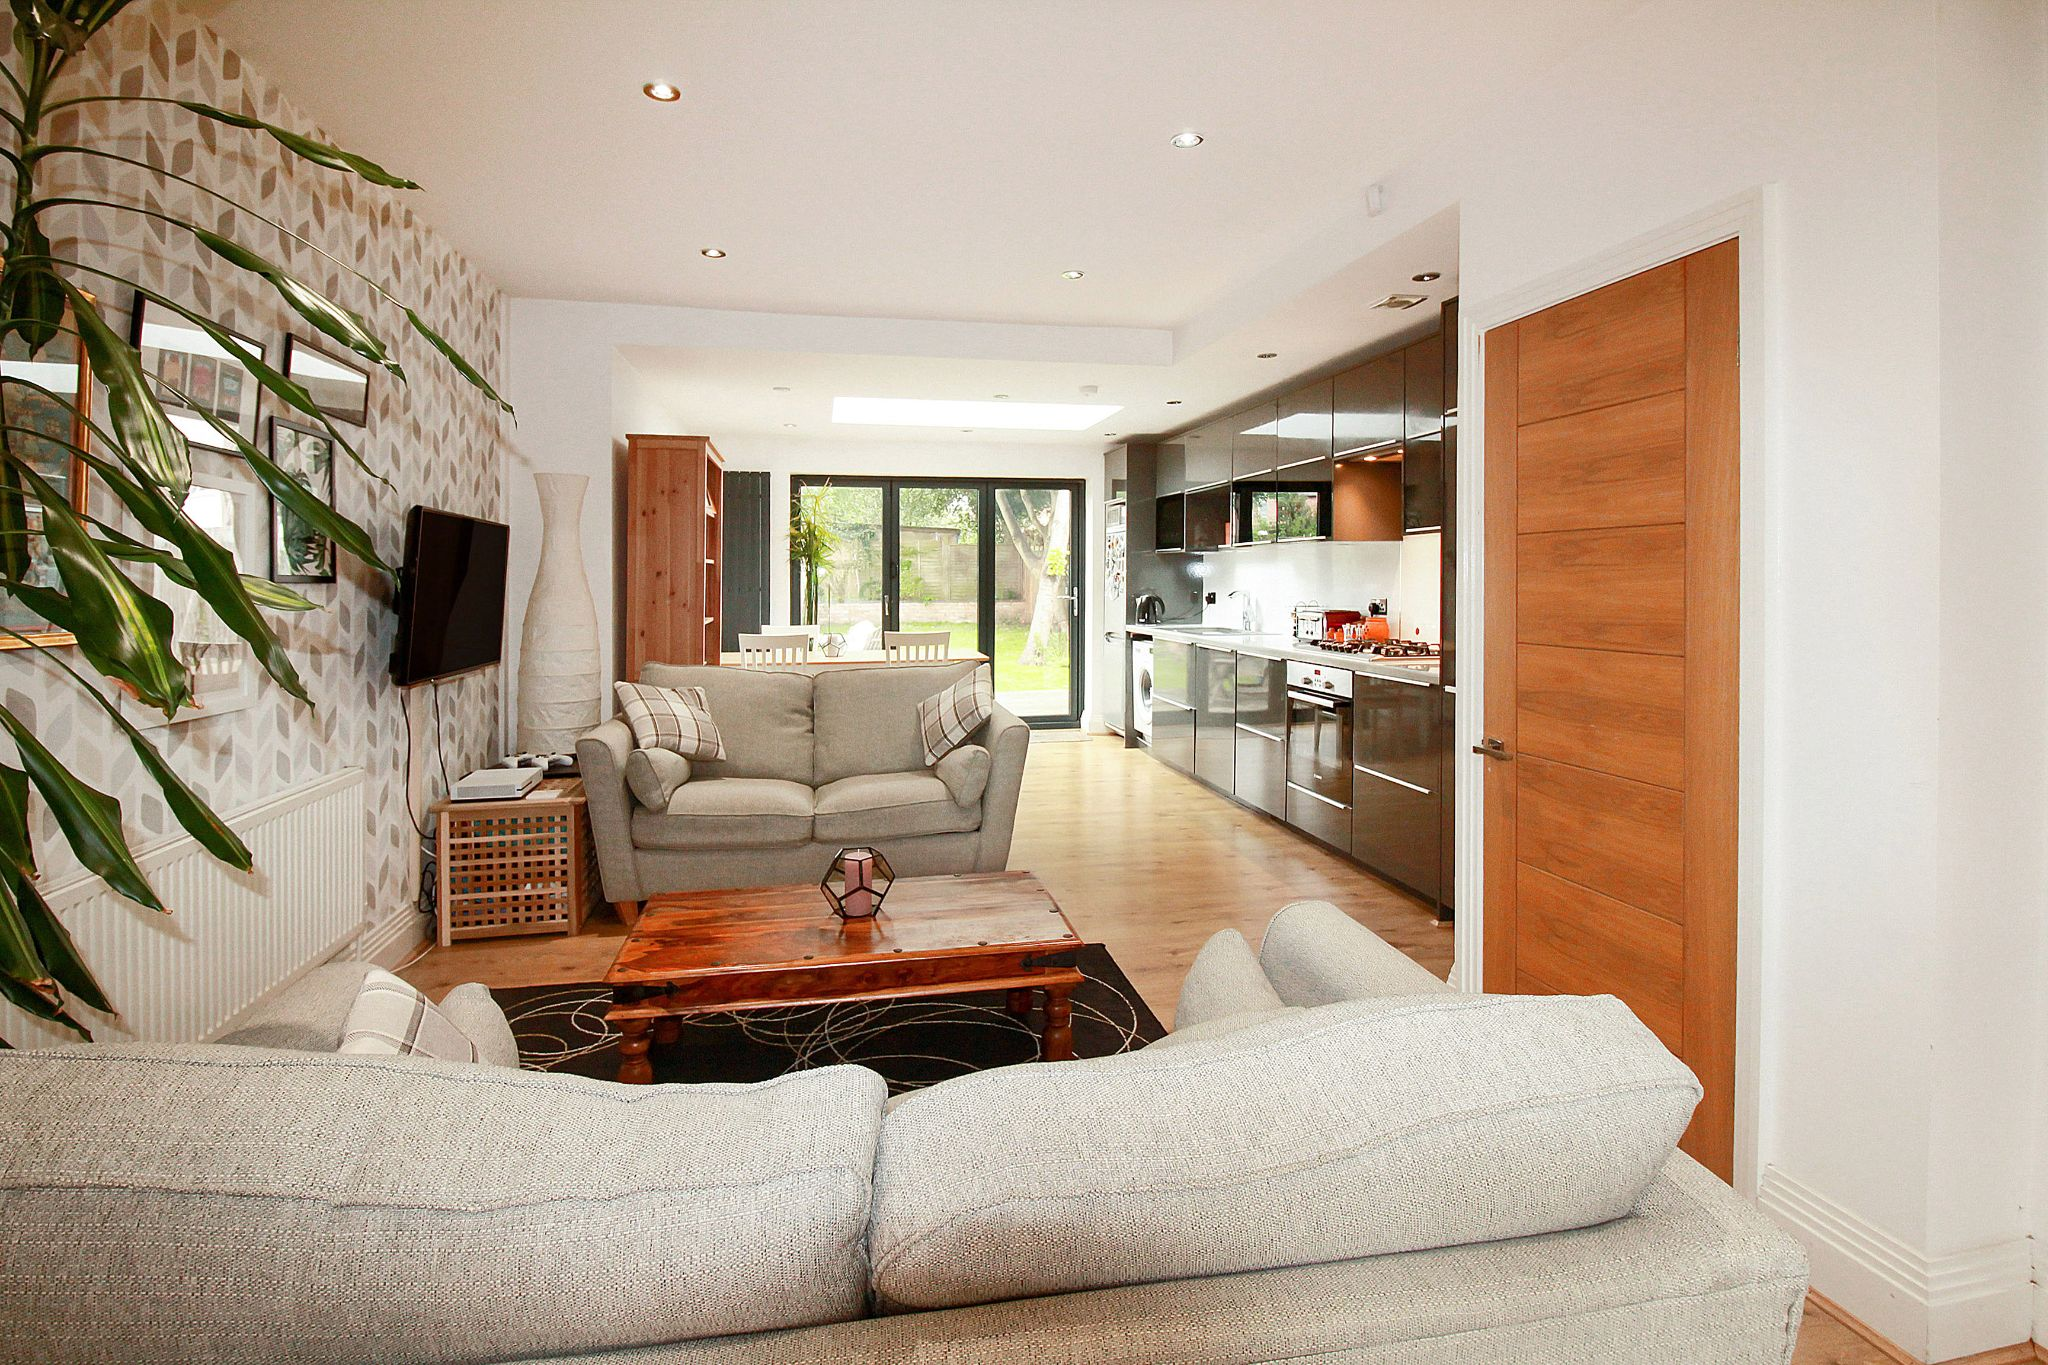 2 bedroom end terraced house For Sale in Solihull - Photograph 4.